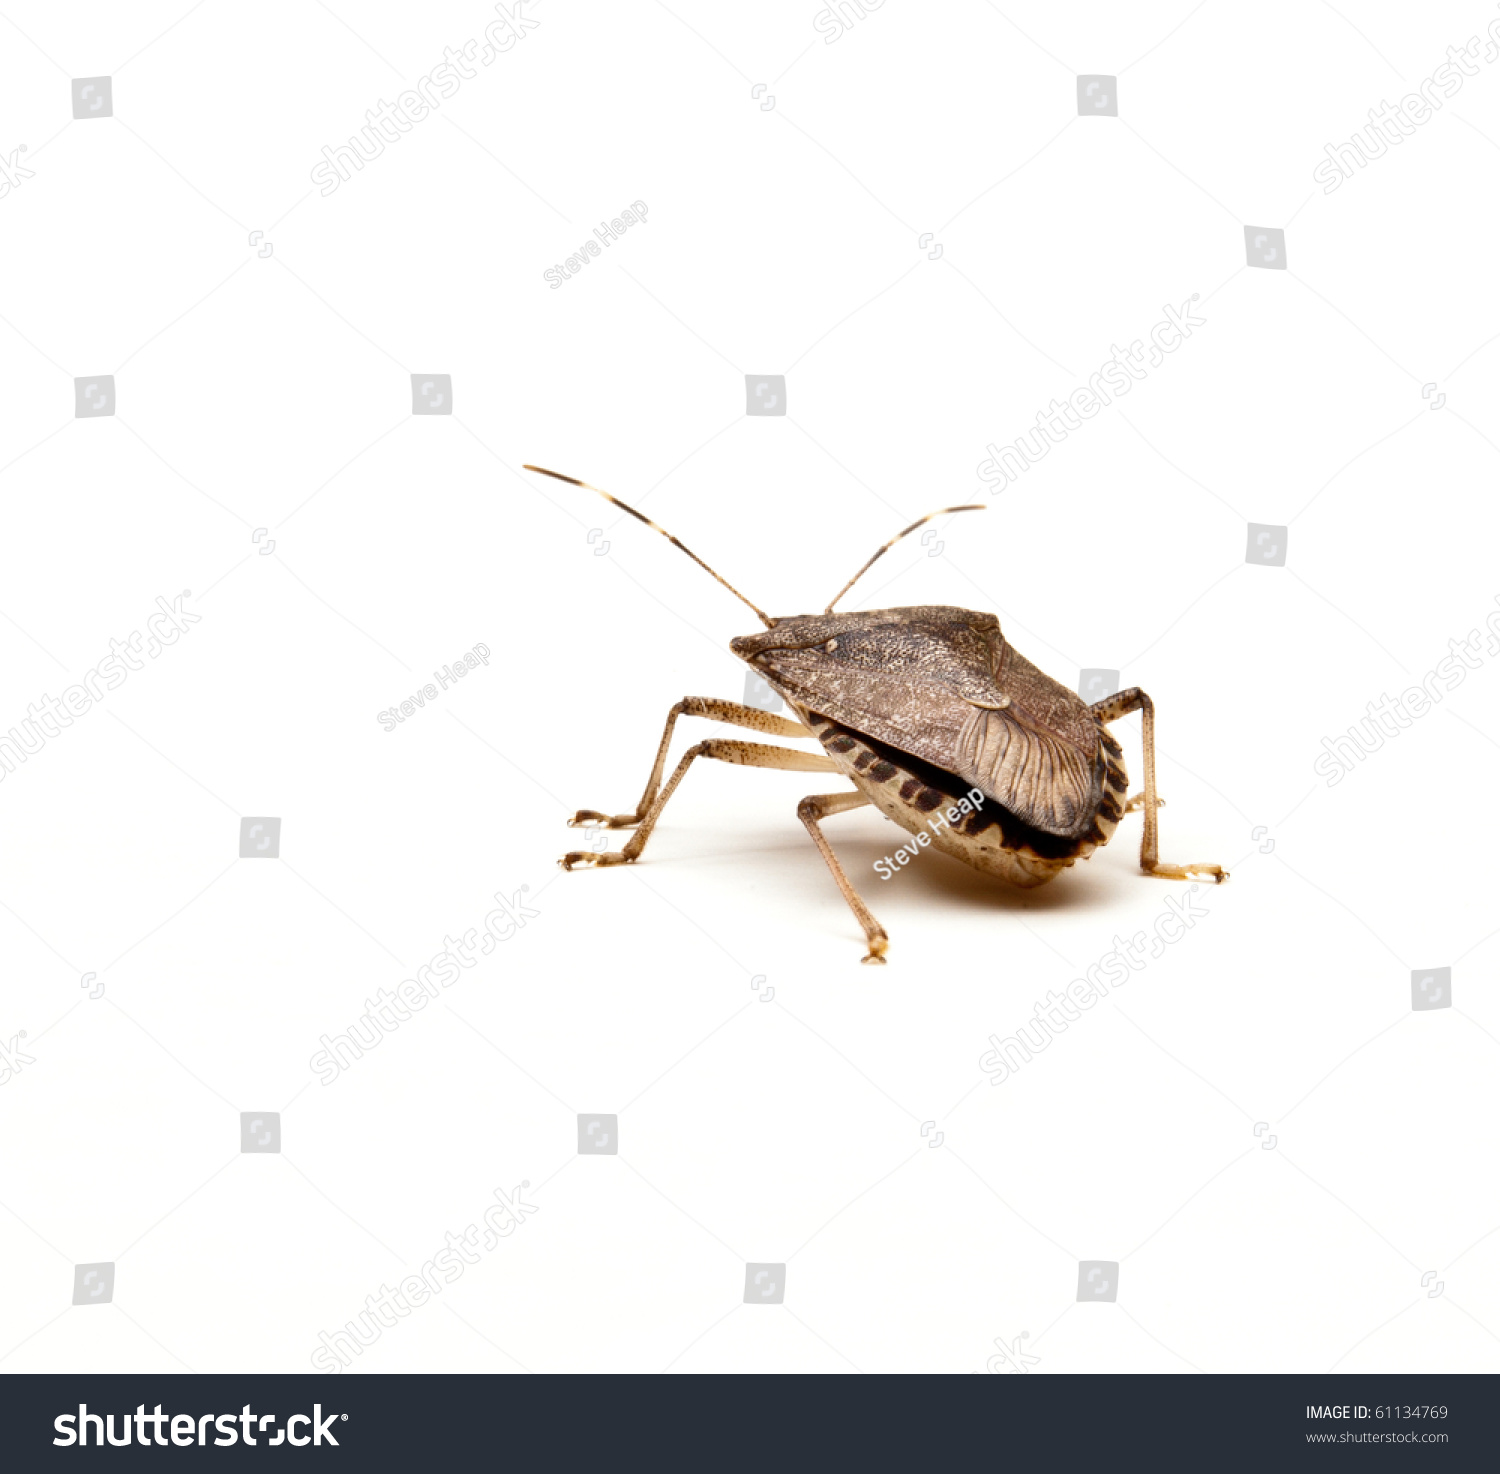 how to get rid of brown marmorated stink bug